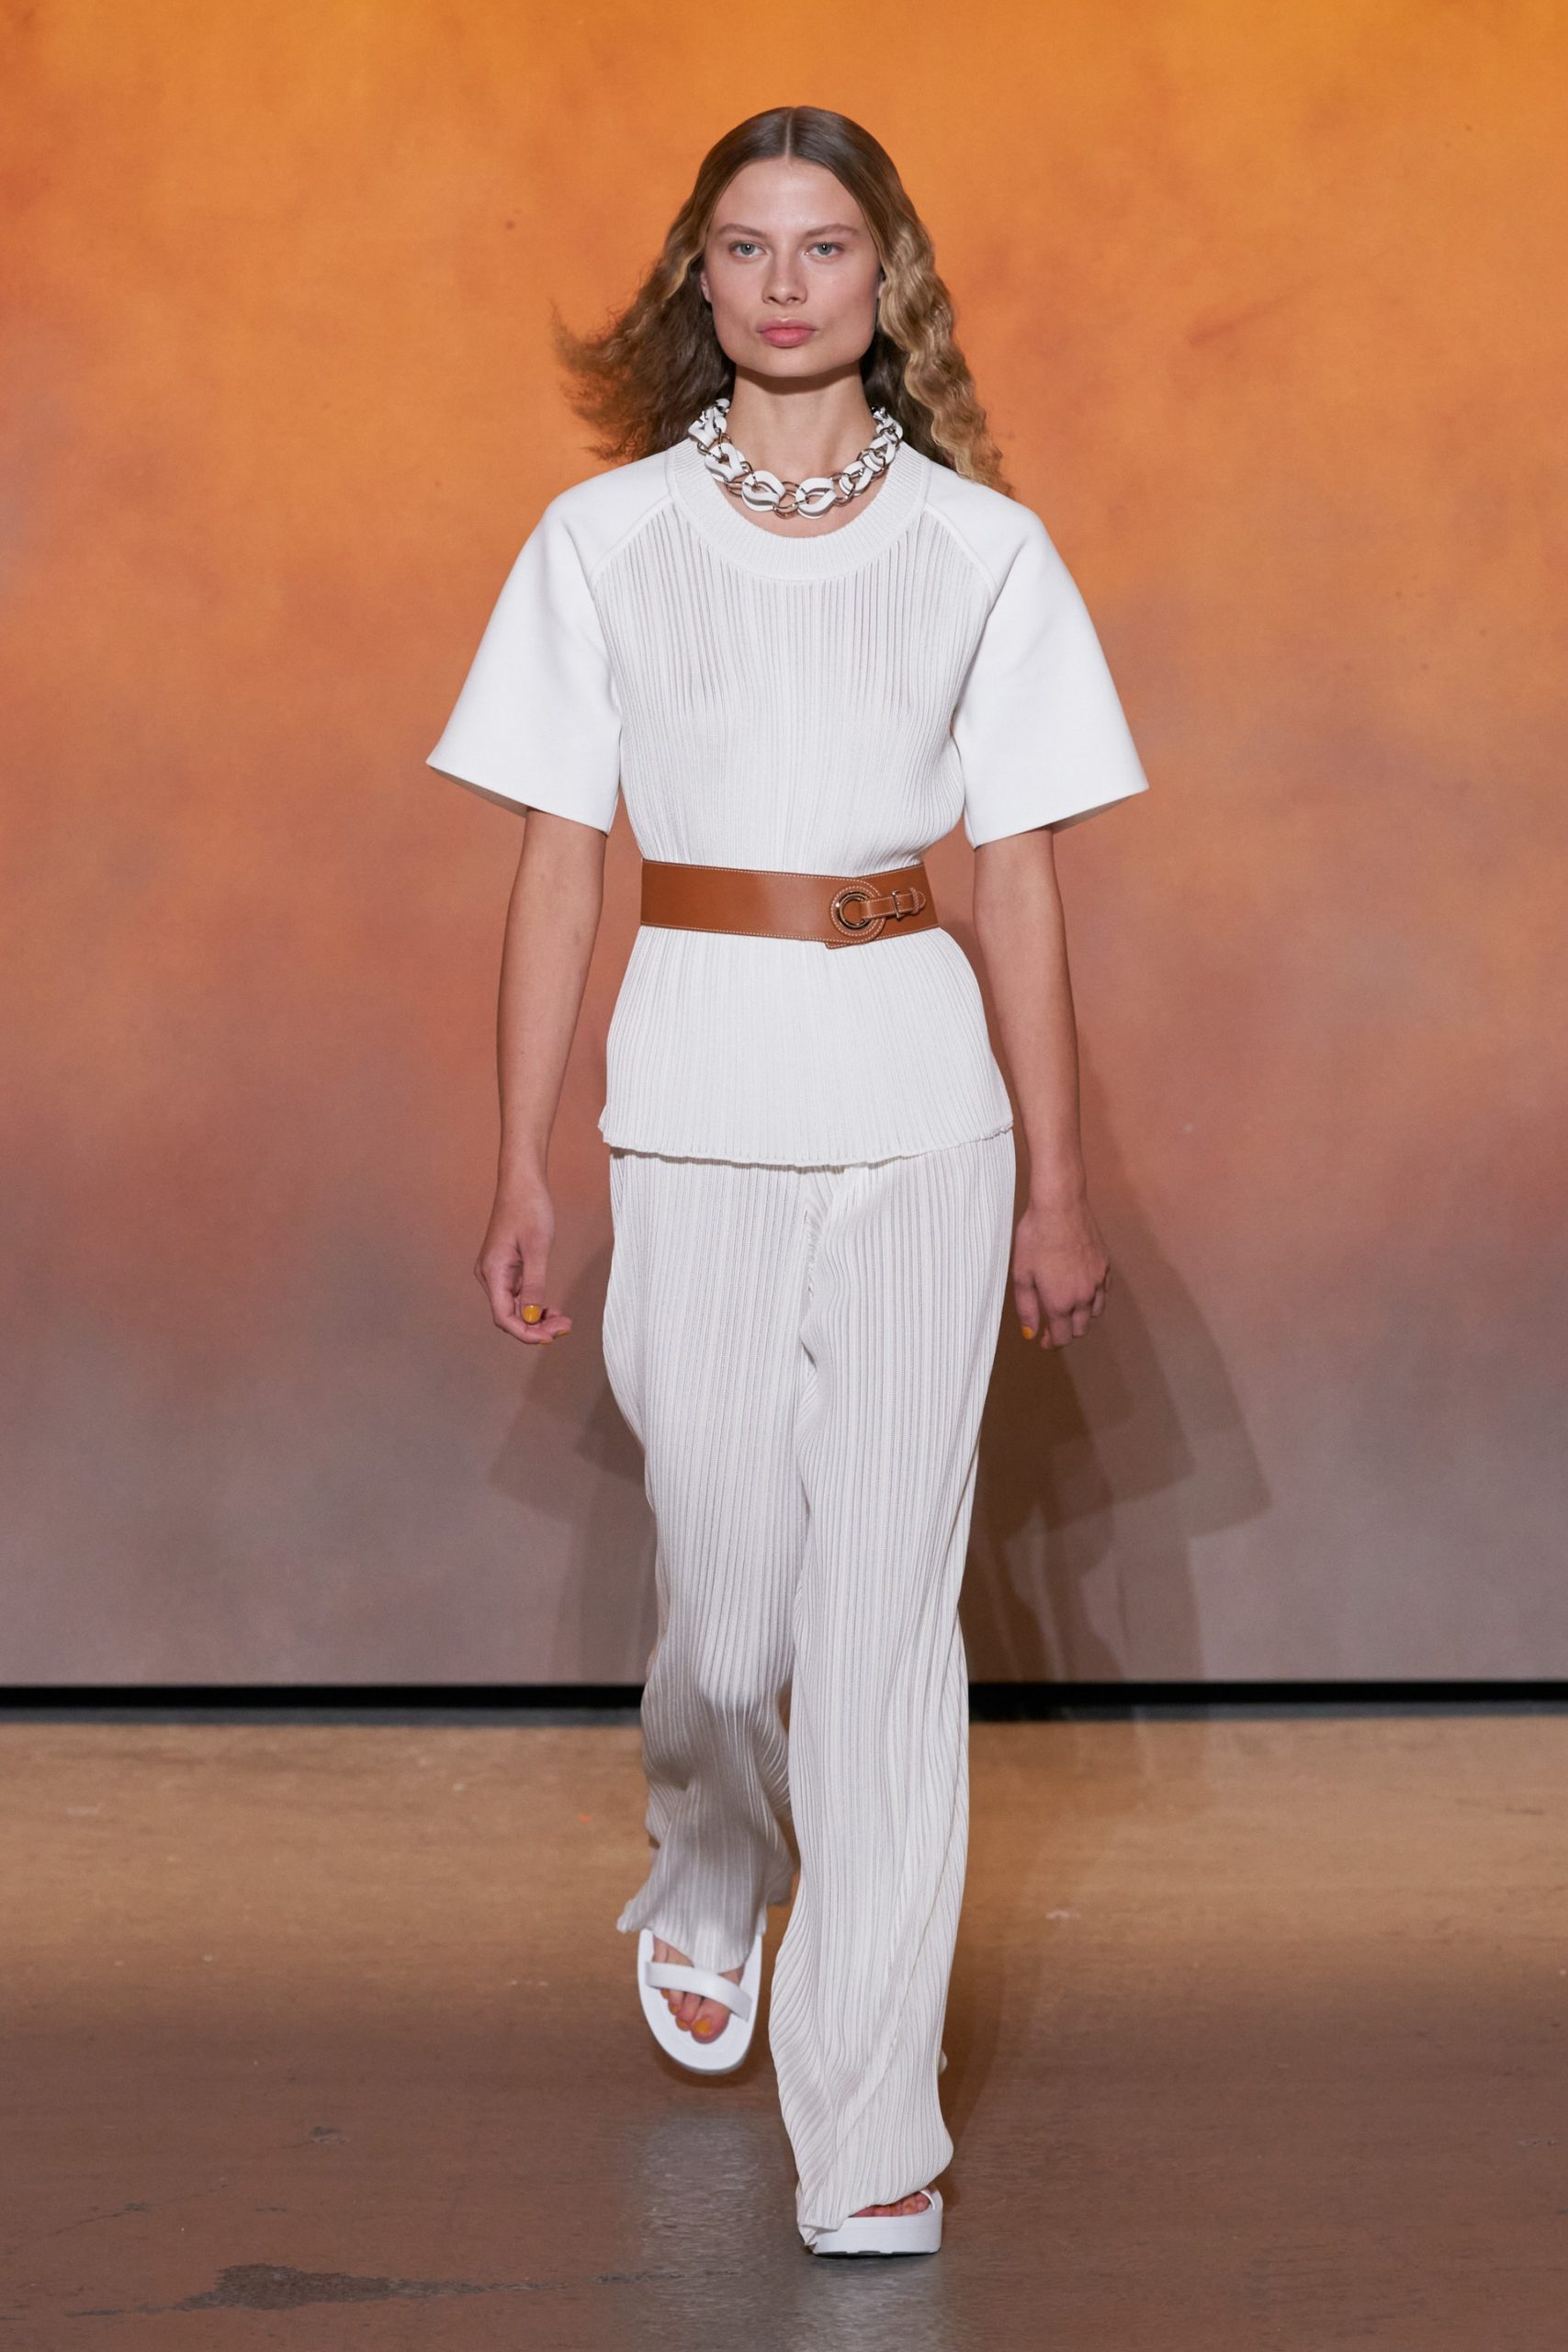 A look from Hermès' Spring 2022 collection. Photo Credit Vogue Runway